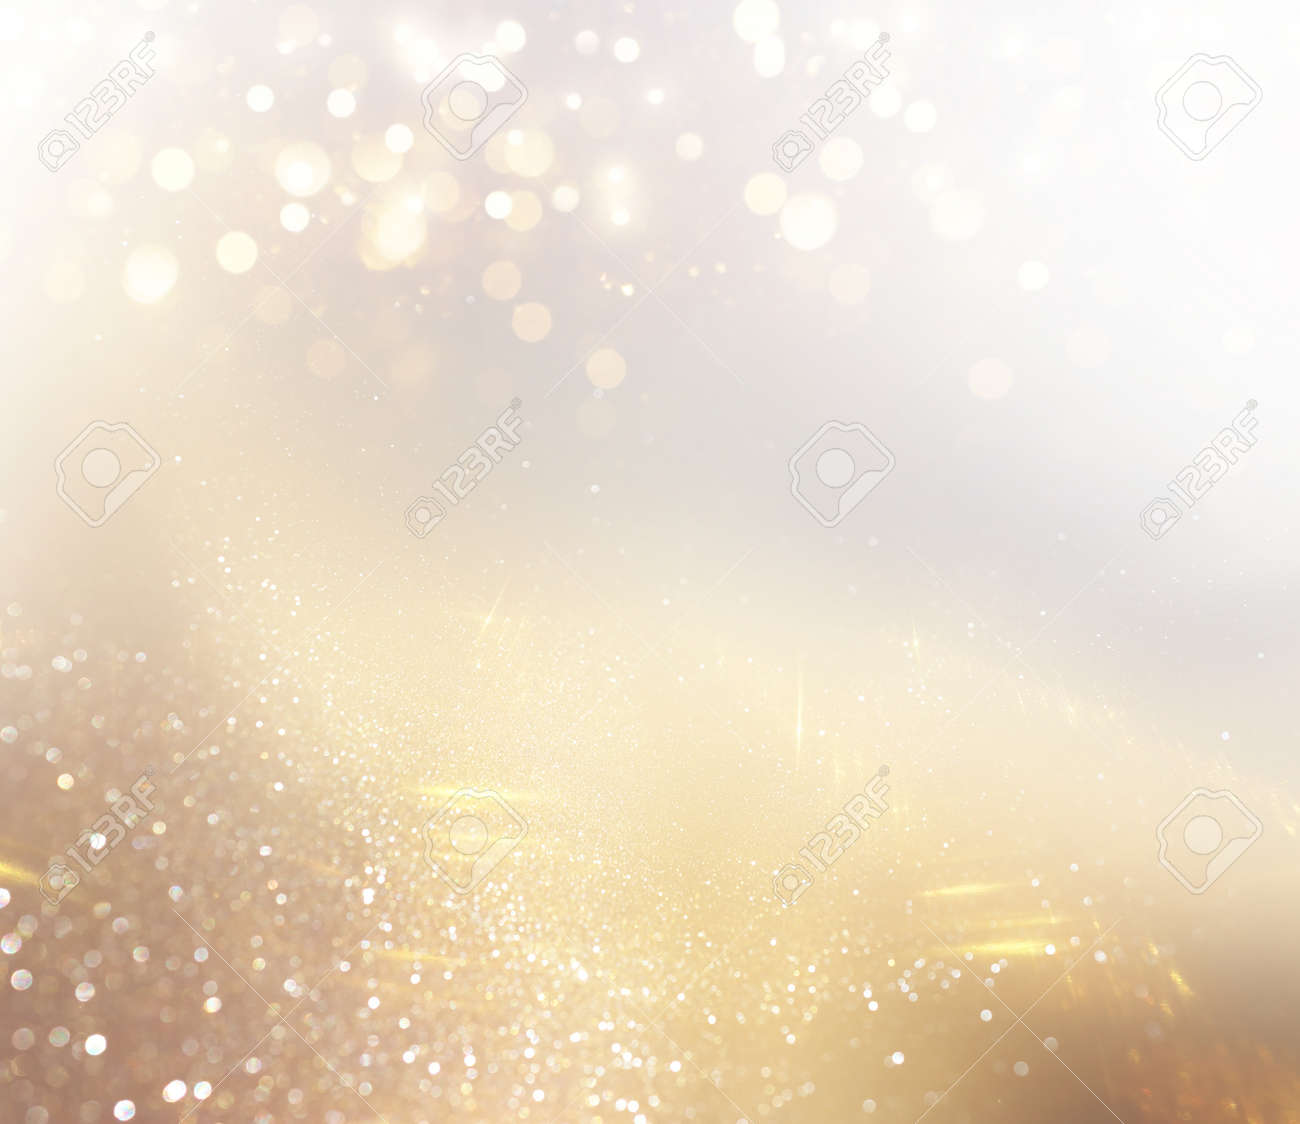 background of abstract gold and silver glitter lights. defocused - 169241659